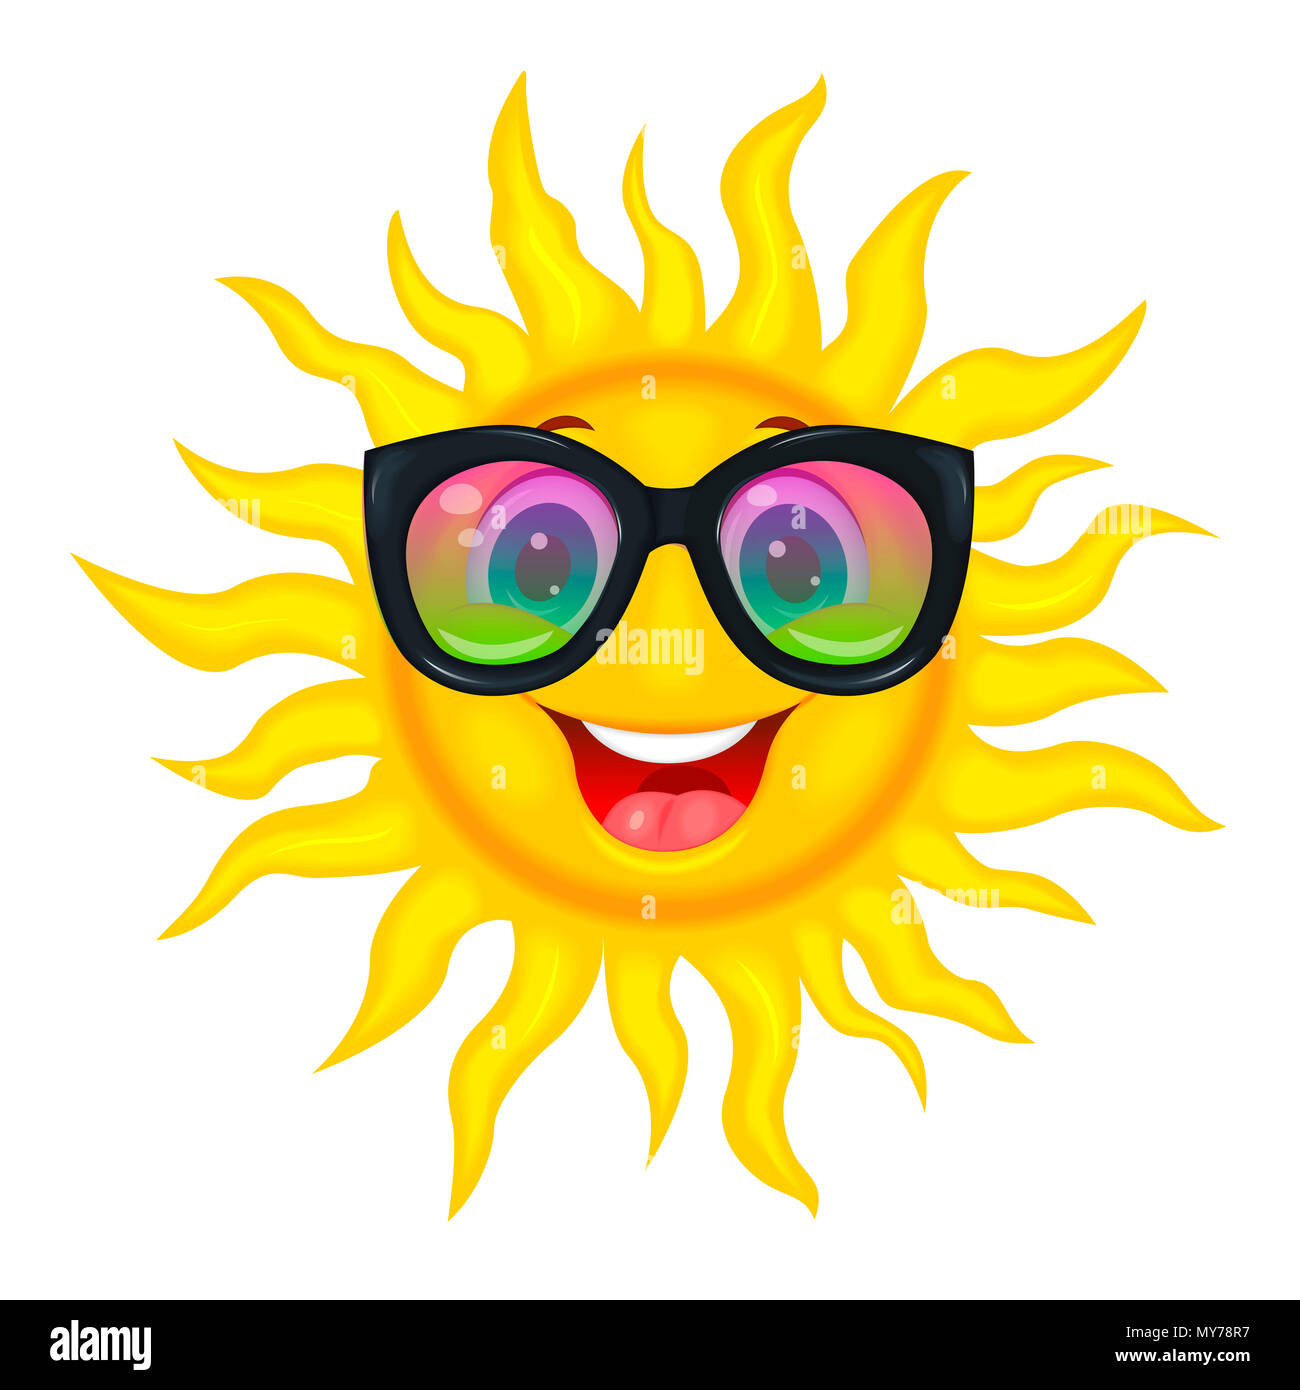 A merry cartoon sun in protective glasses from the sun. A cheerful cartoon sun on a white background. - Stock Image